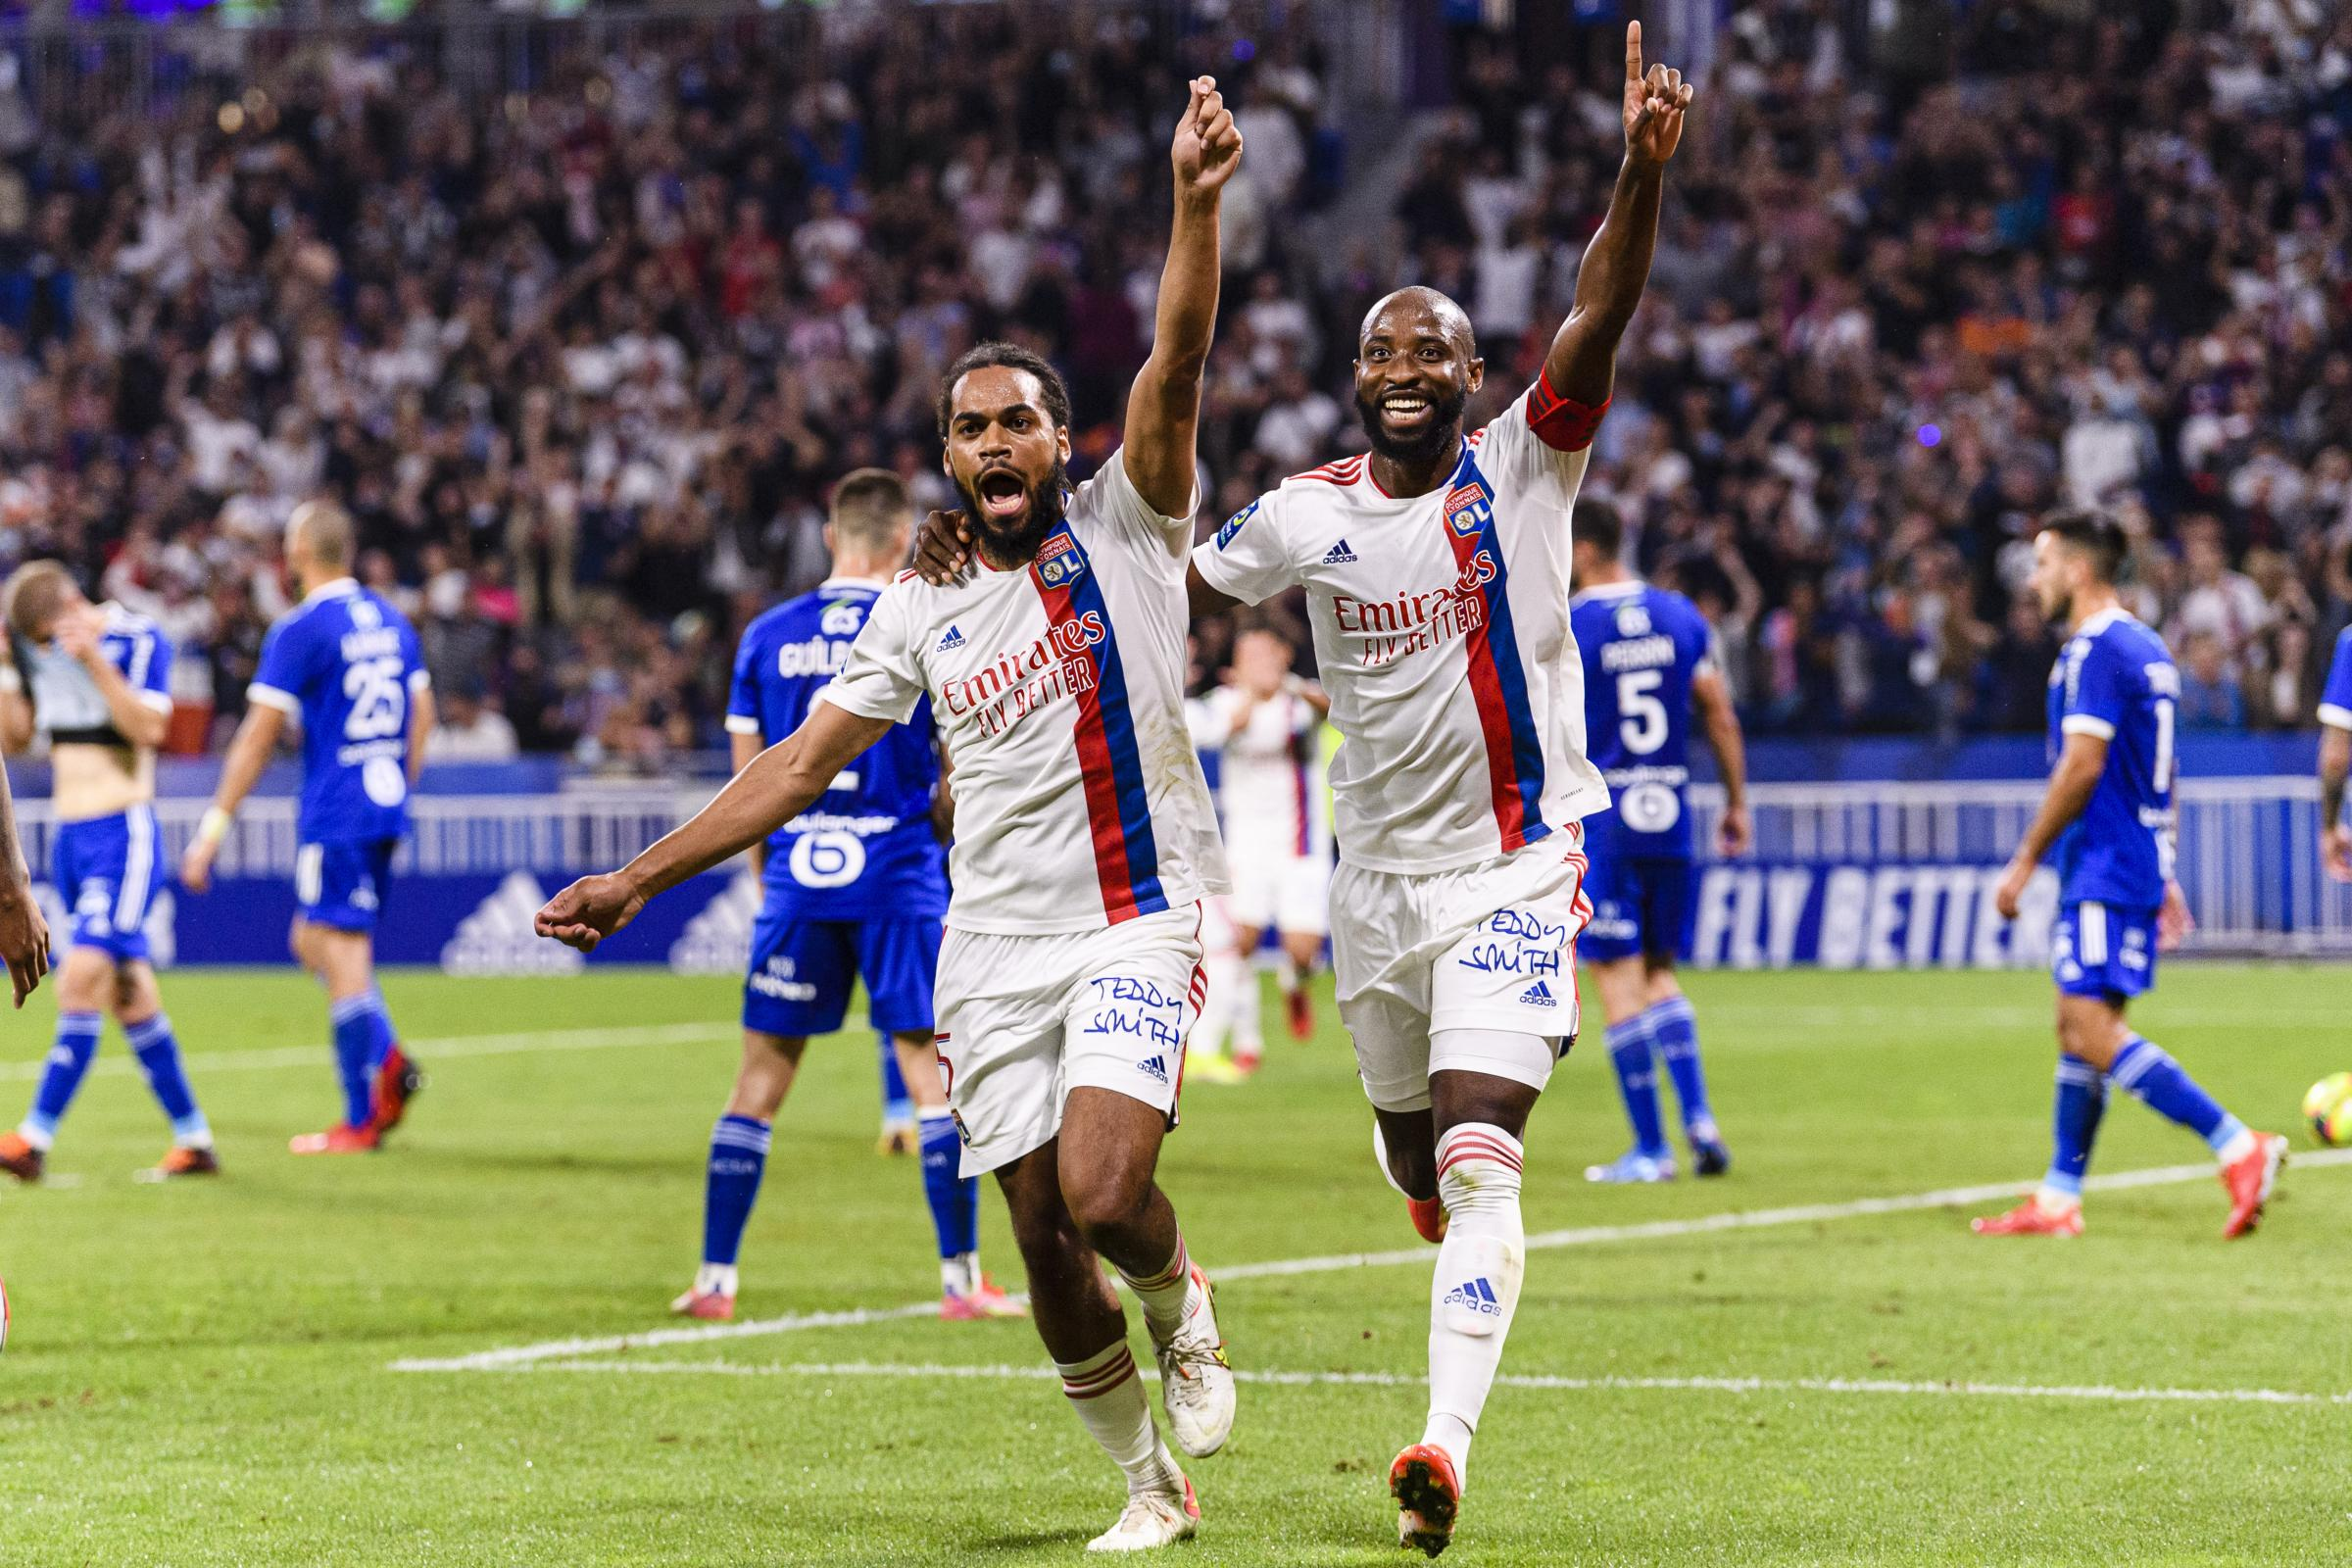 They can make them cry: French football expert on how Rangers can stun Lyon in Europa League opener